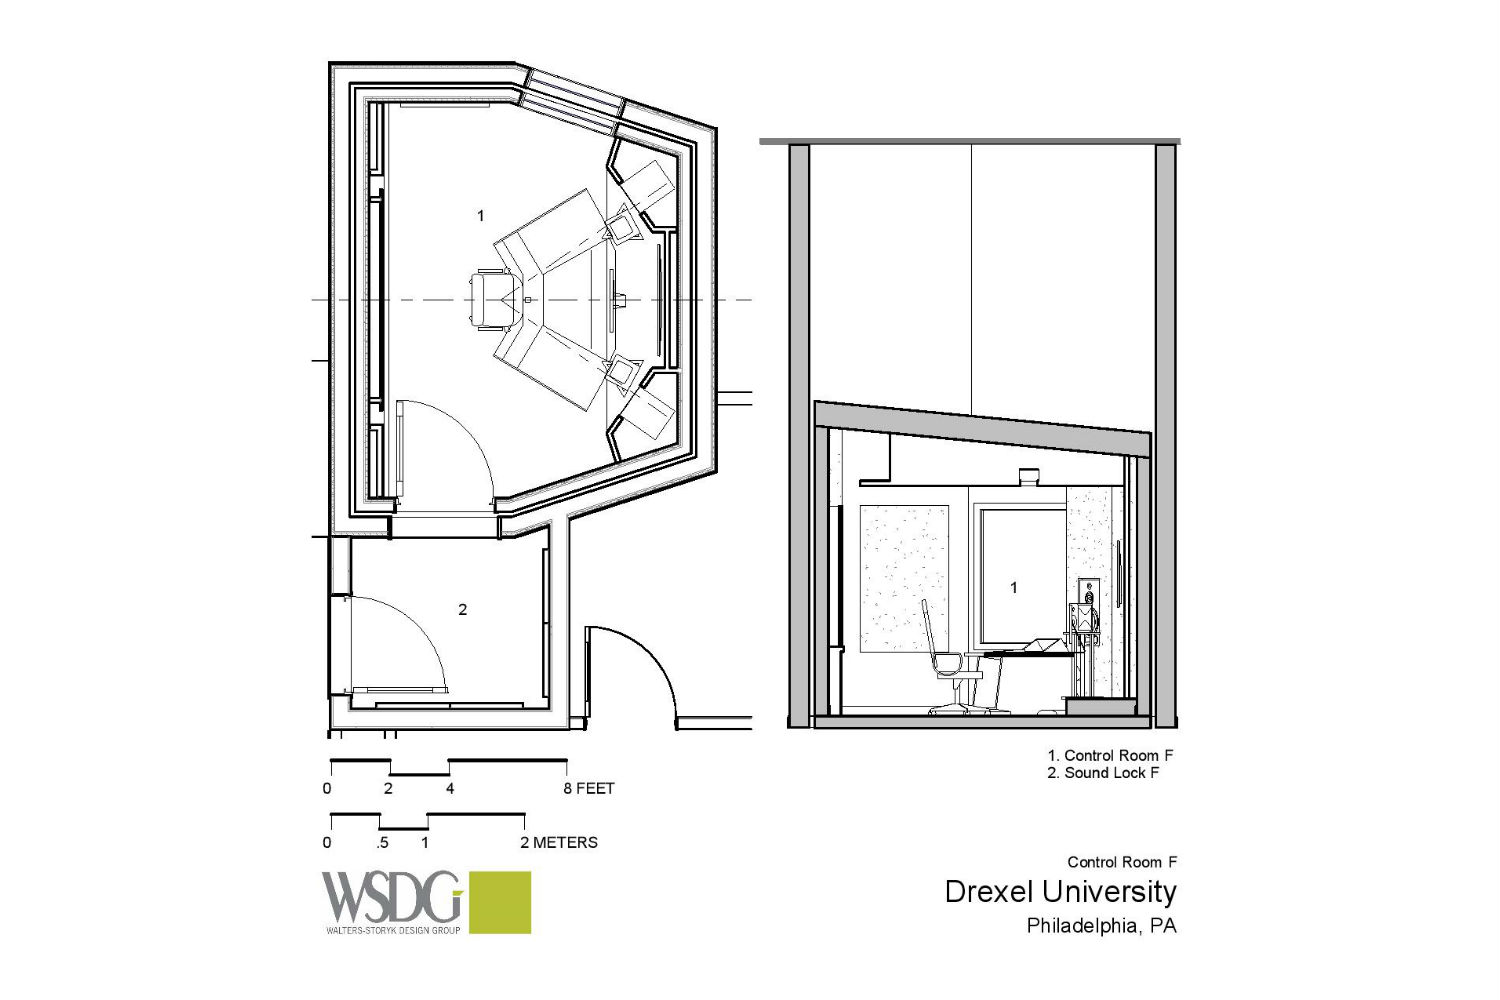 Drexel University in Philadelphia, PA is one of America's 15 largest universities. Their brand-new recording facilities, designed by the WSDG team, expands their music and recording program. Presentation drawing 3